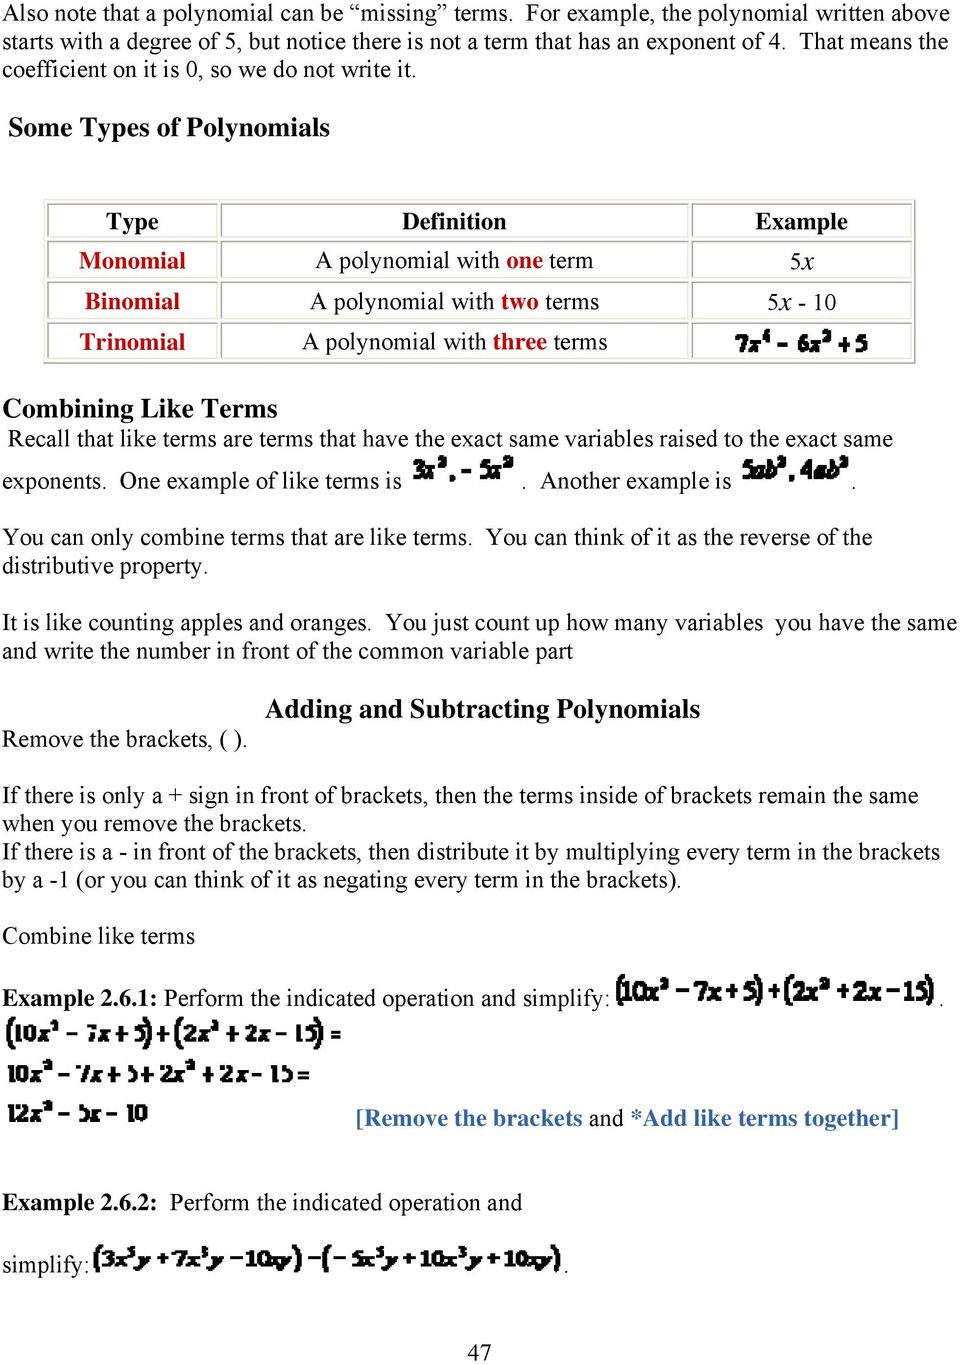 Some Types of Polynomials Type Definition Example Monomial A polynomial with one term 5x Binomial A polynomial with two terms 5x - 10 Trinomial A polynomial with three terms Combining Like Terms